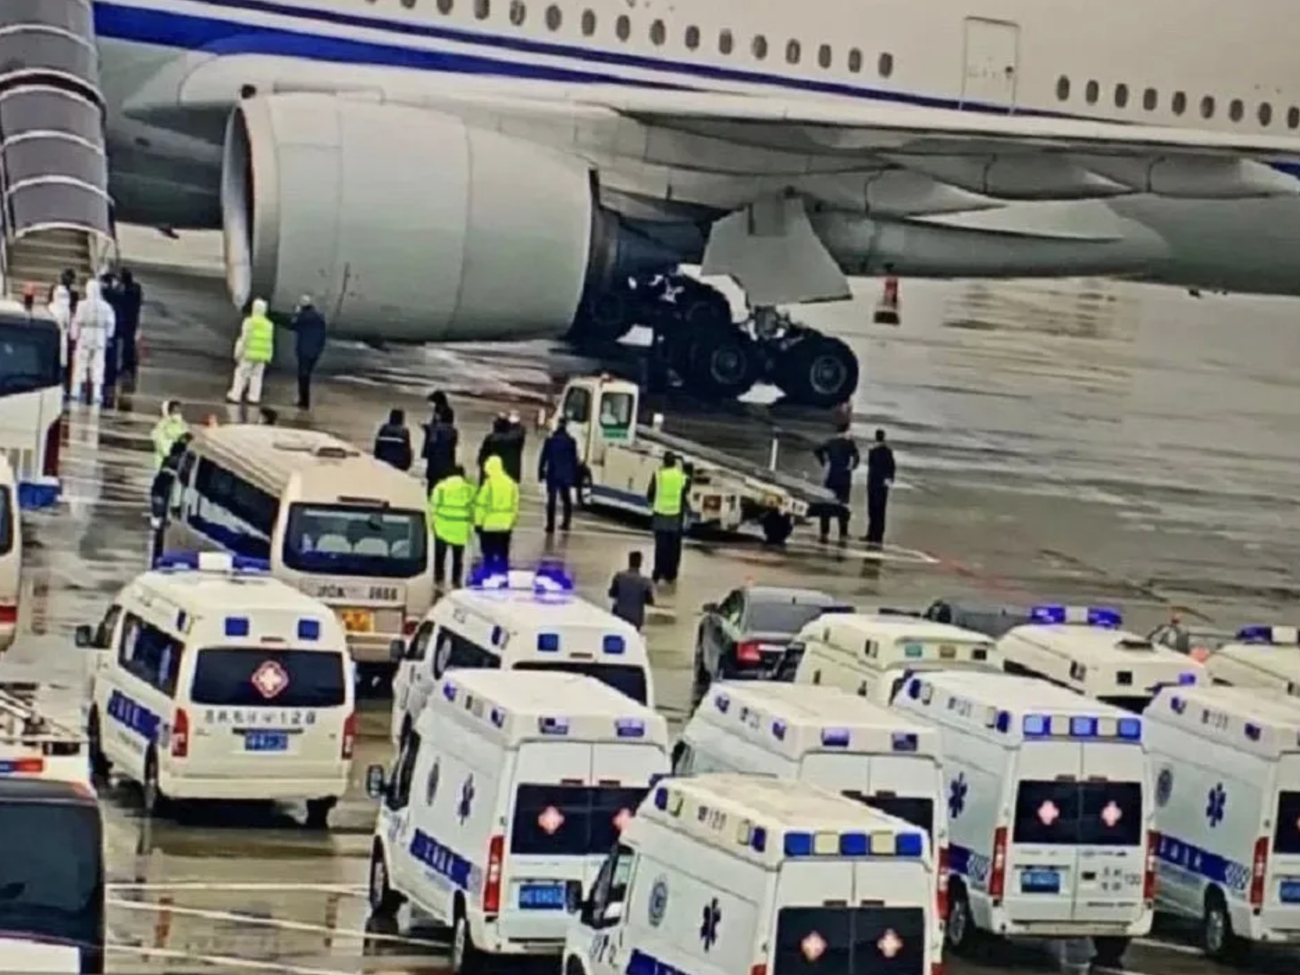 China's airports maintain strict prevention controls during pandemic